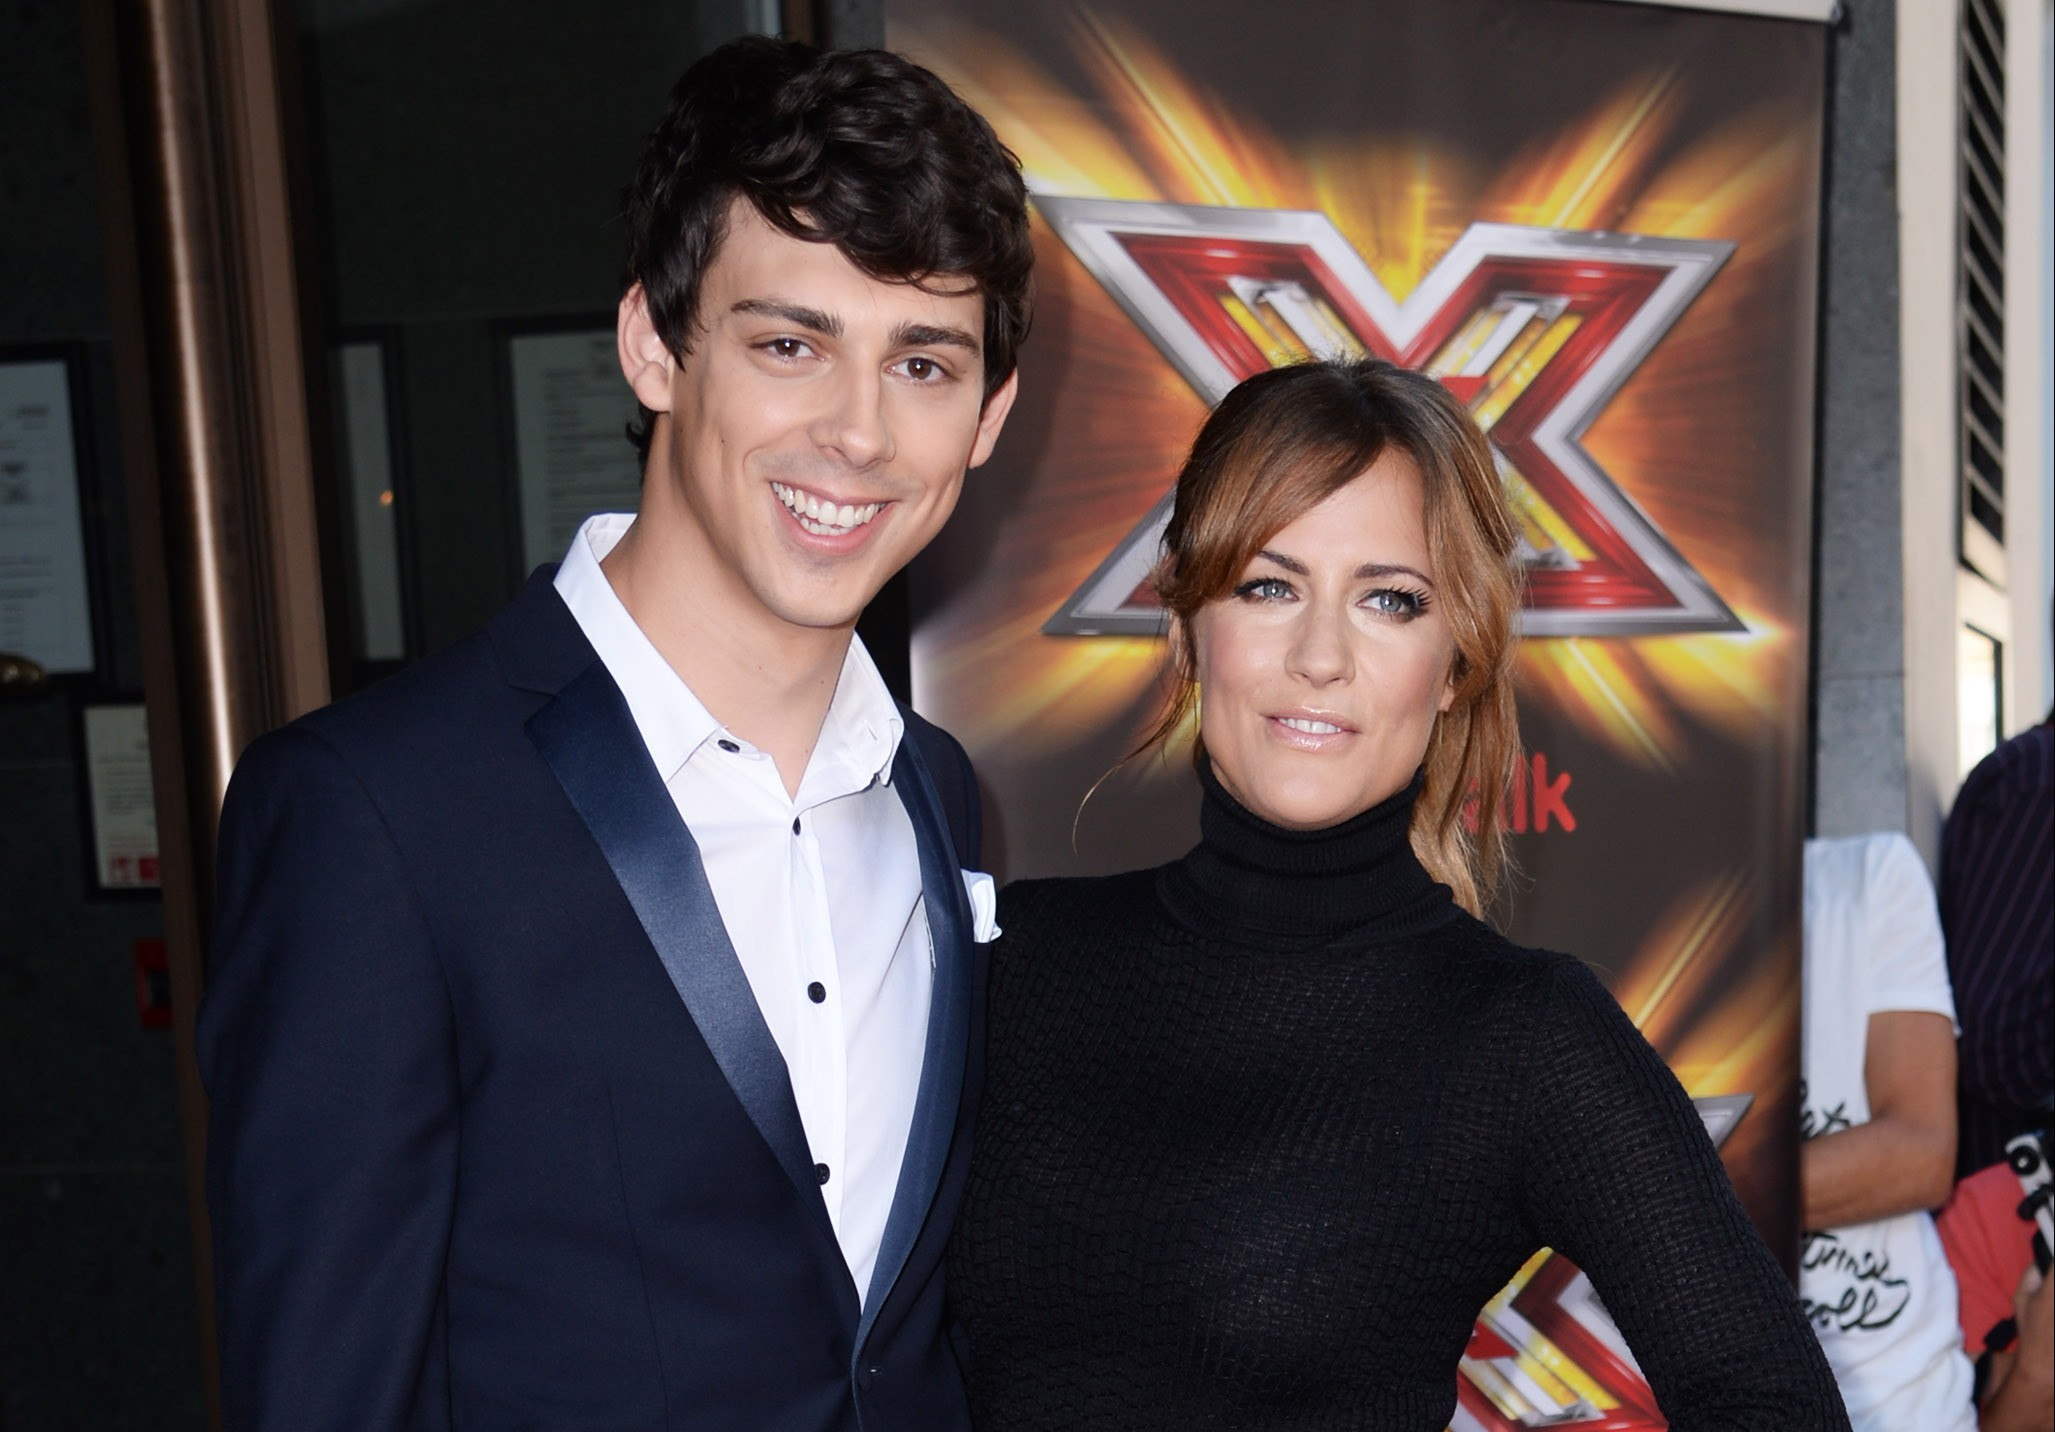 LONDON, ENGLAND - AUGUST 29: Caroline Flack and Matt Richardson attend The X Factor press launch at The Mayfair Hotel on August 29, 2013 in London, England. (Photo by Dave J Hogan/Getty Images)